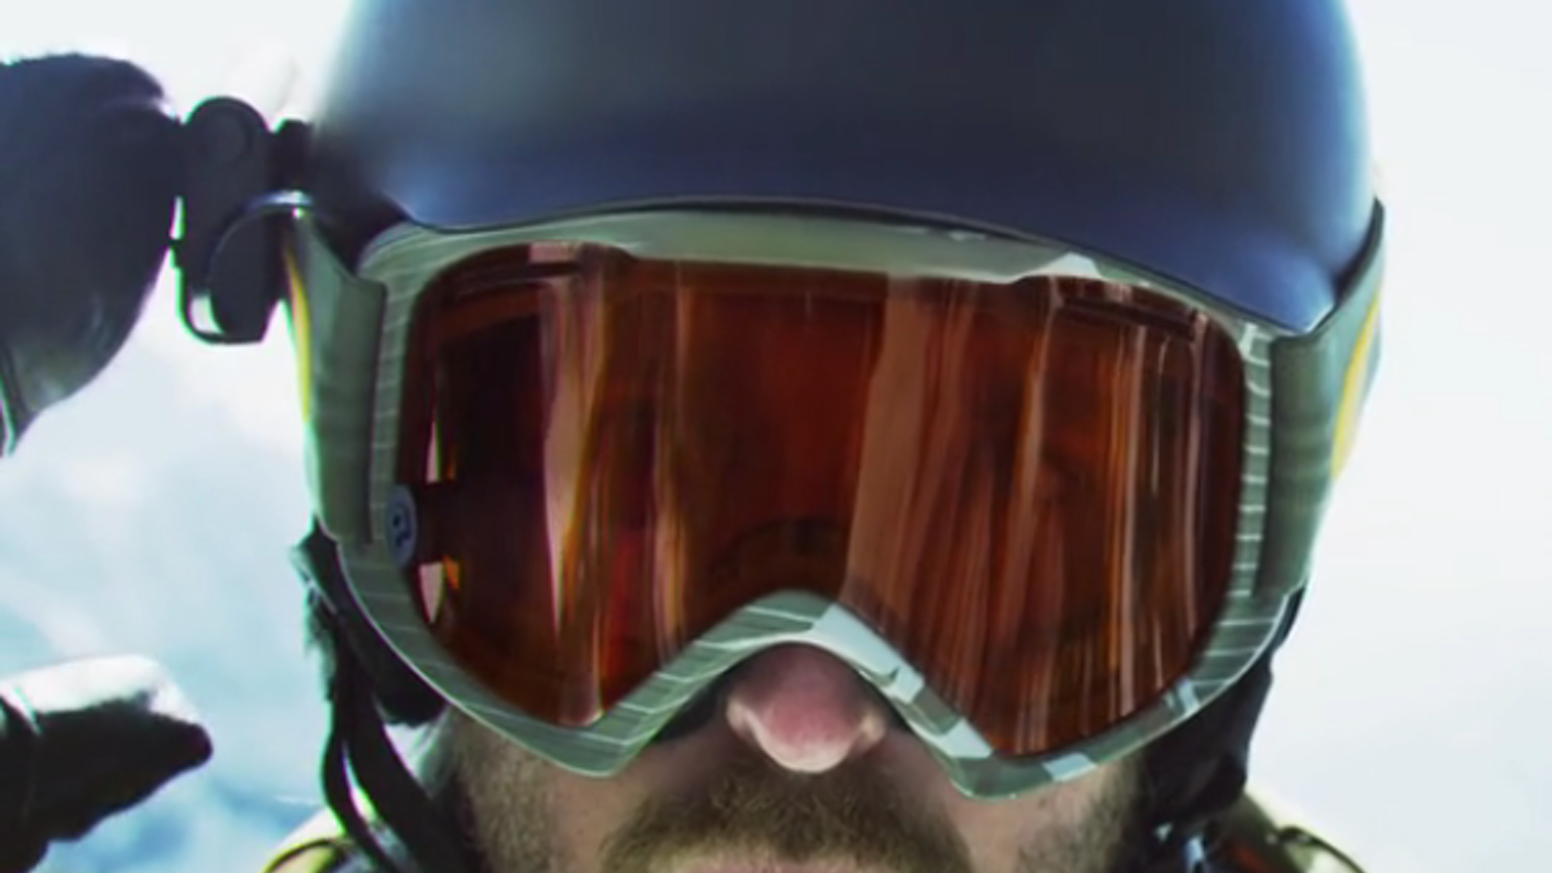 Track, connect and share with the first universally mountable augmented reality heads up display for skiers and snowboarders.